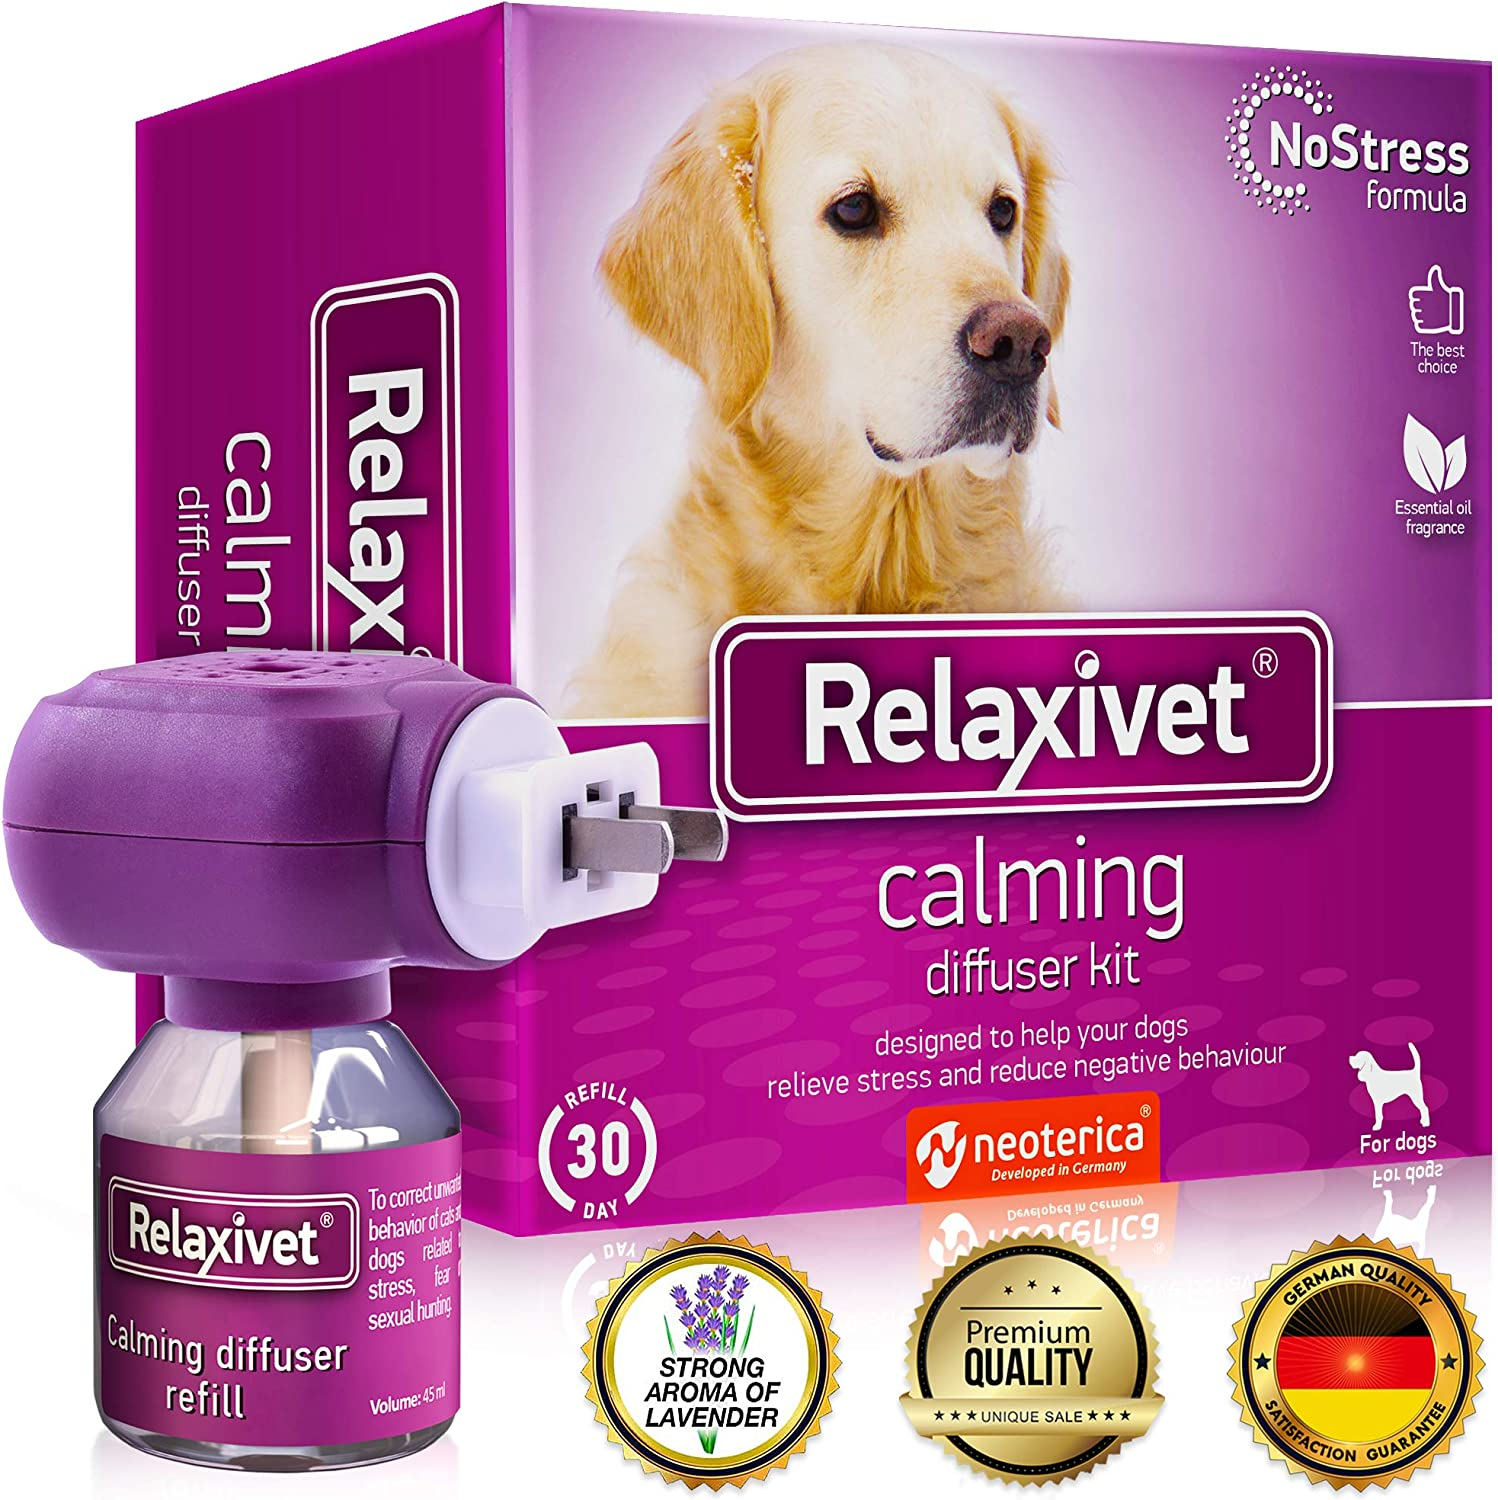 Sales of SALE items from new works Relaxivet Dog Calming Pheromone Diffuser No-Stres Improved Kit Excellence -